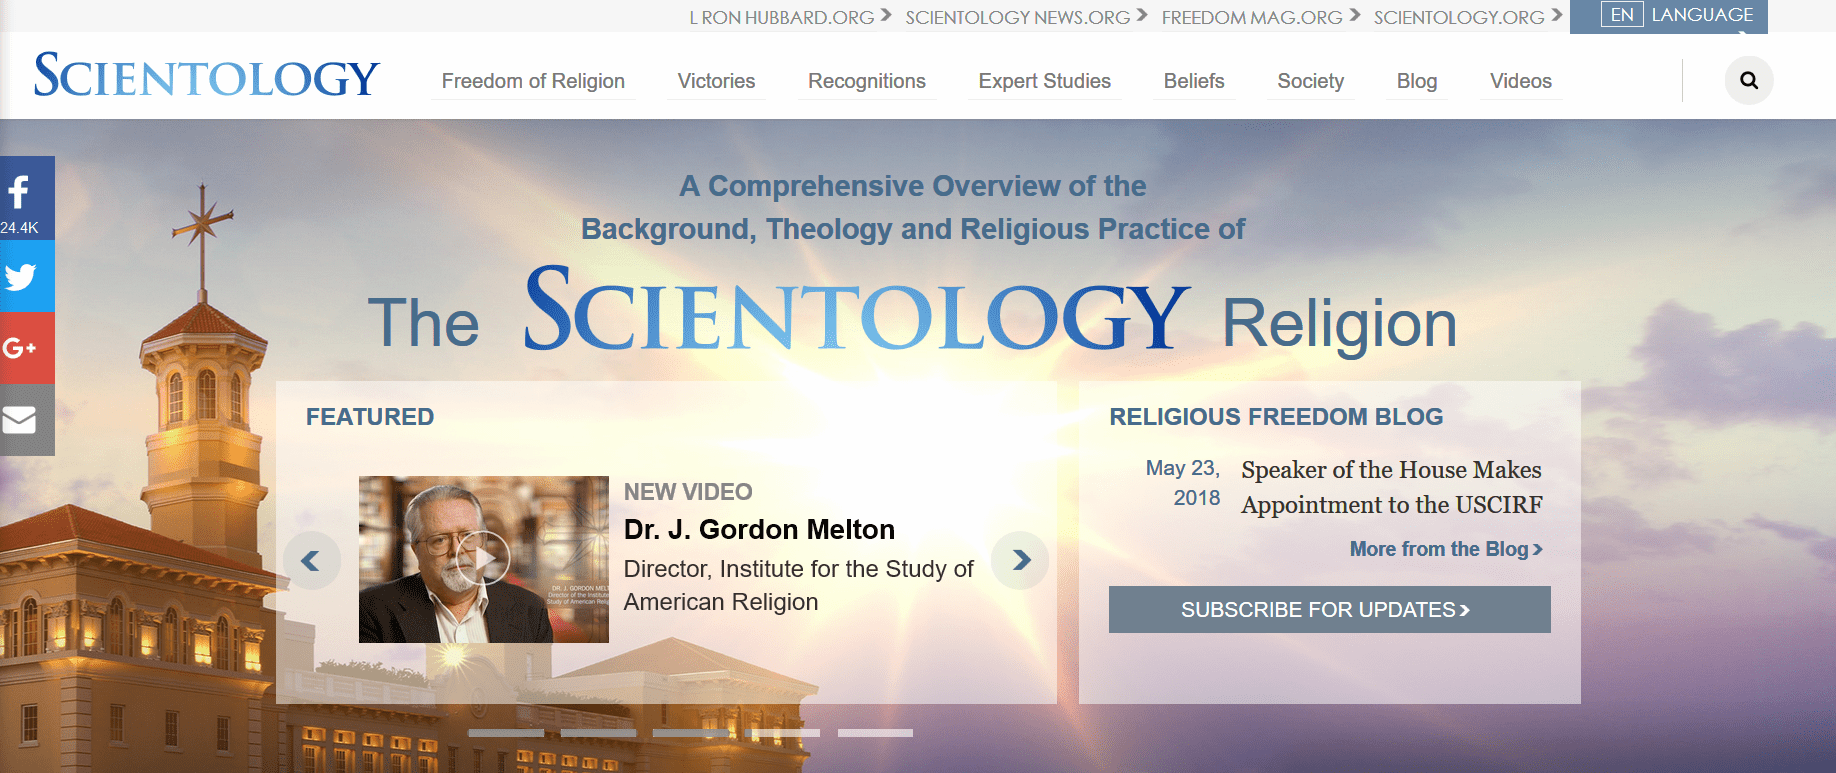 What is scientology beliefs on homosexuality in christianity